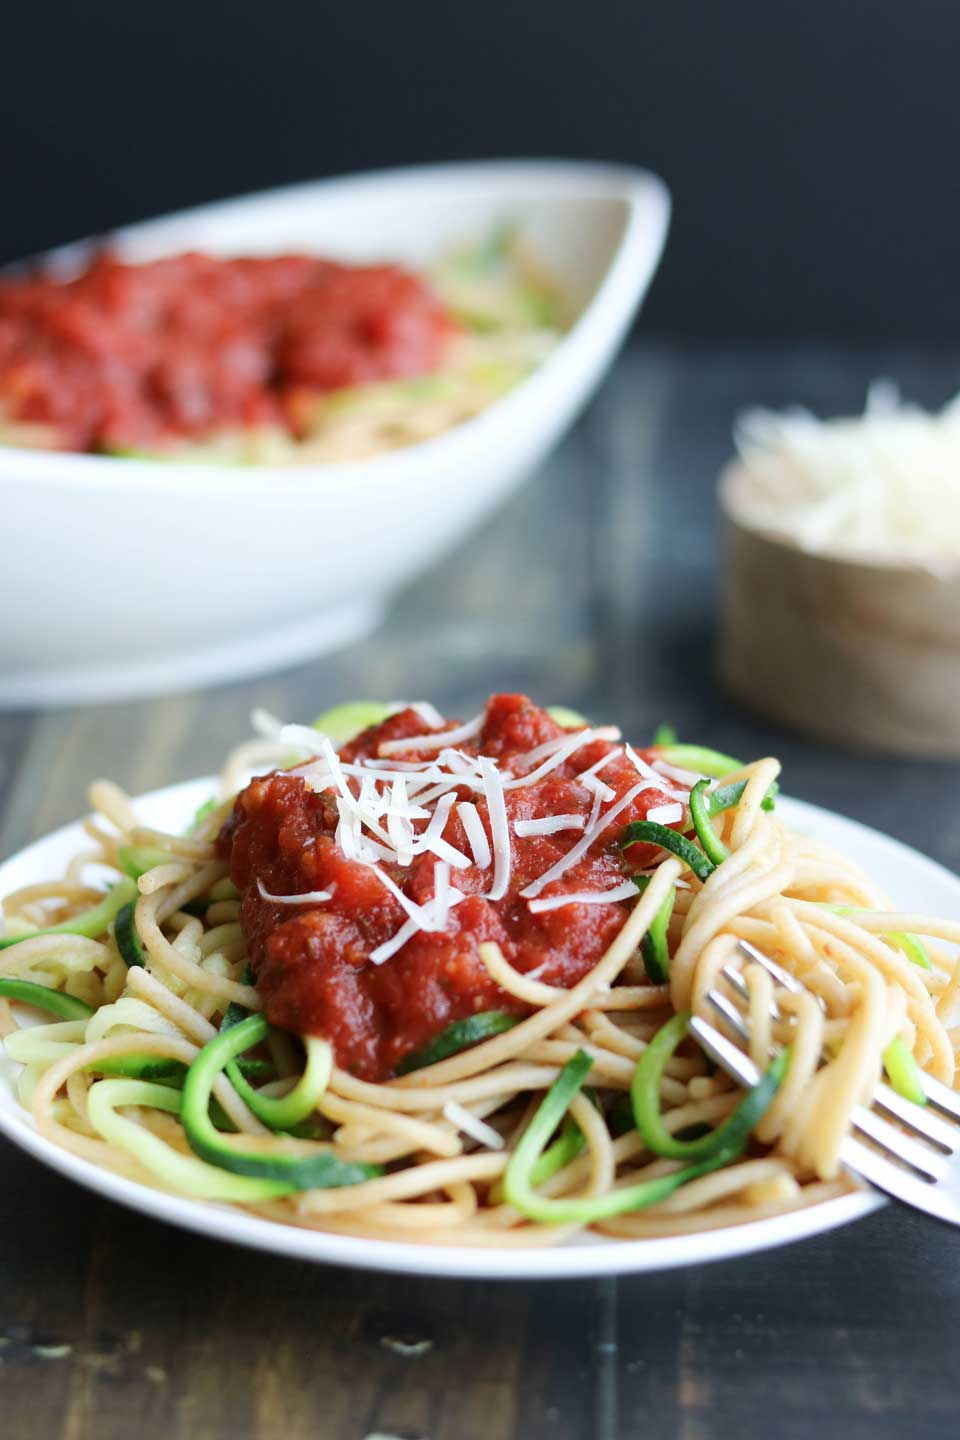 Want to try Zoodles? Here's how to start! This super-easy basic Zoodles Recipe is the perfect way to ease your family into trying Zucchini Noodles. By mixing spiralized Zoodles and spaghetti, you reap benefits all around … reduced calories and great vitamins from the zucchini noodles, plus all the fiber and whole-grain goodness of whole wheat spaghetti. Spiralizer recipes are a fun, creative way to eat more veggies … and this easy Zoodle Recipe is a great first step! | www.TwoHealthyKitchens.com